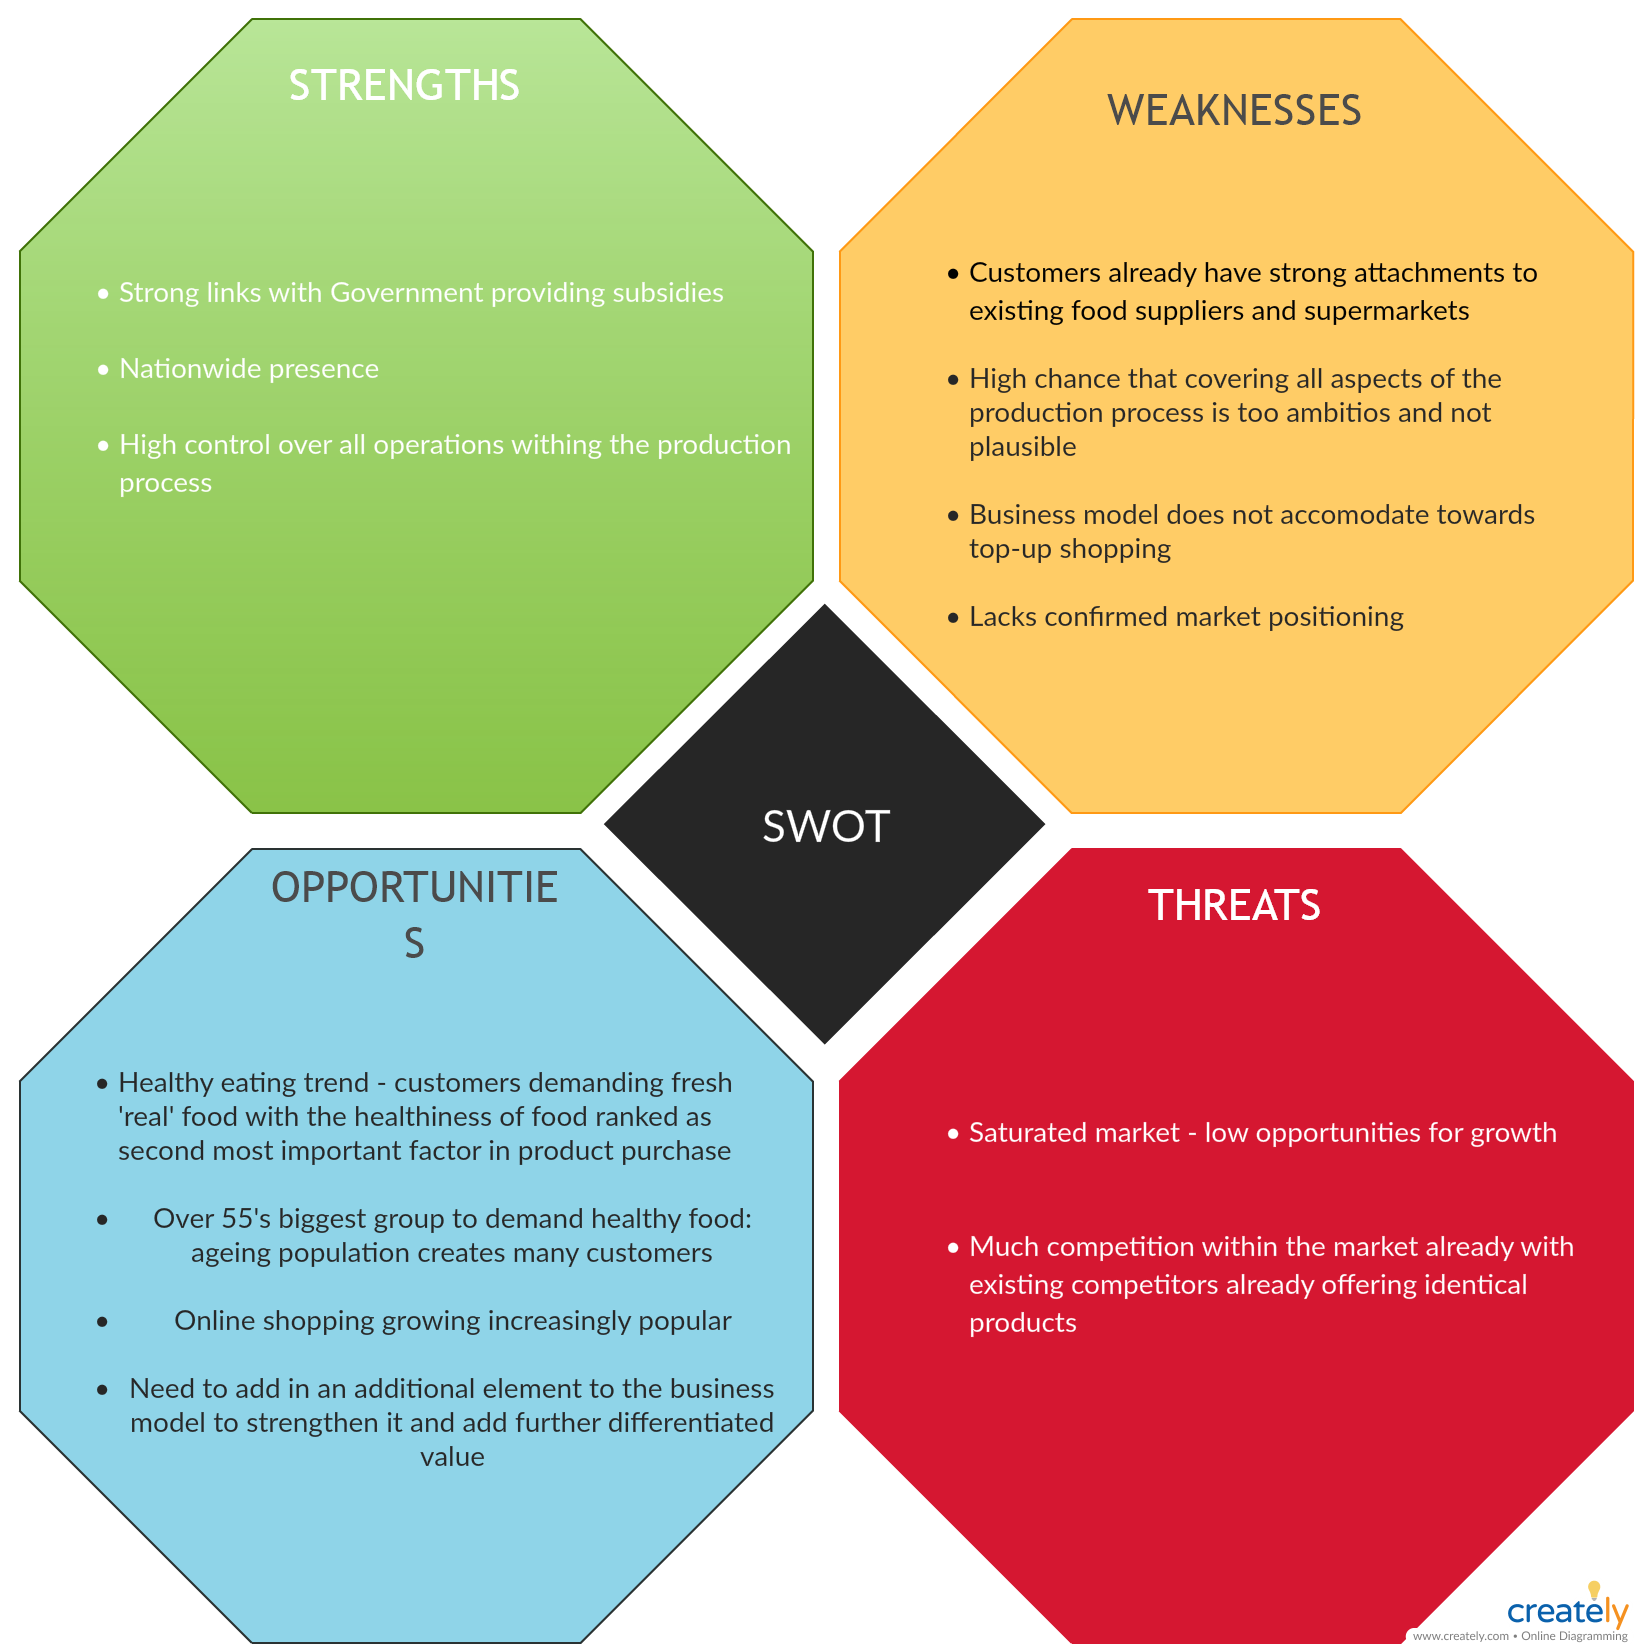 Swot Analysis Agriculture Industry Swot Analysis Swot Analysis Template Analysis